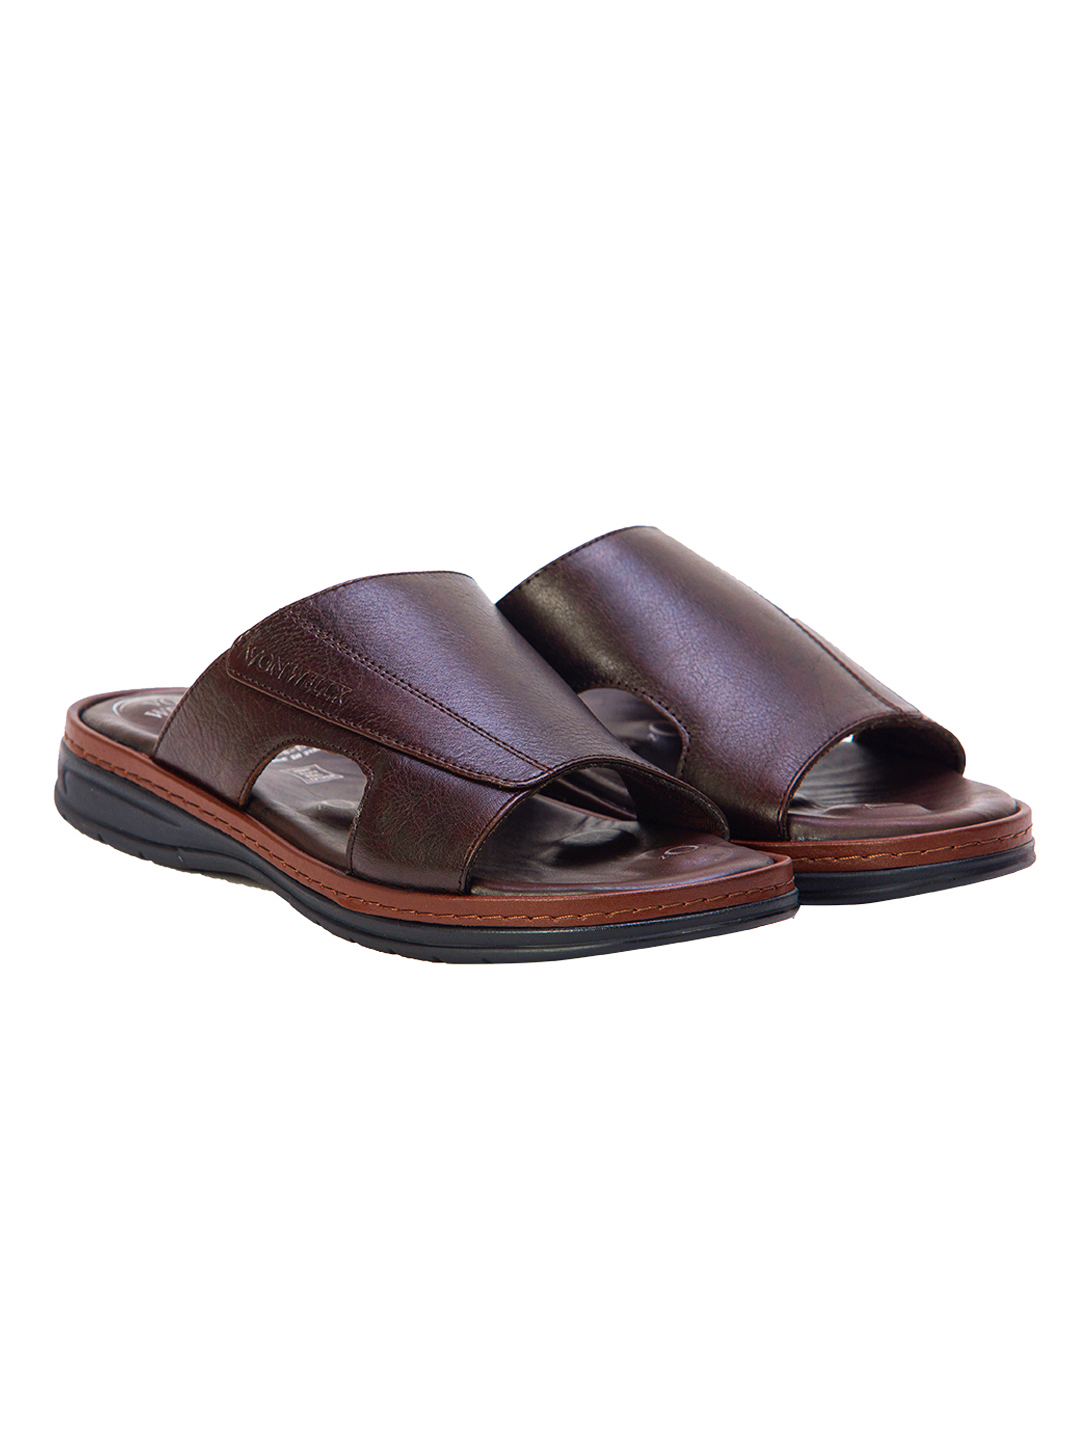 Buy VON WELLX GERMANY COMFORT SAUNTER BROWN SLIPPERS In Delhi